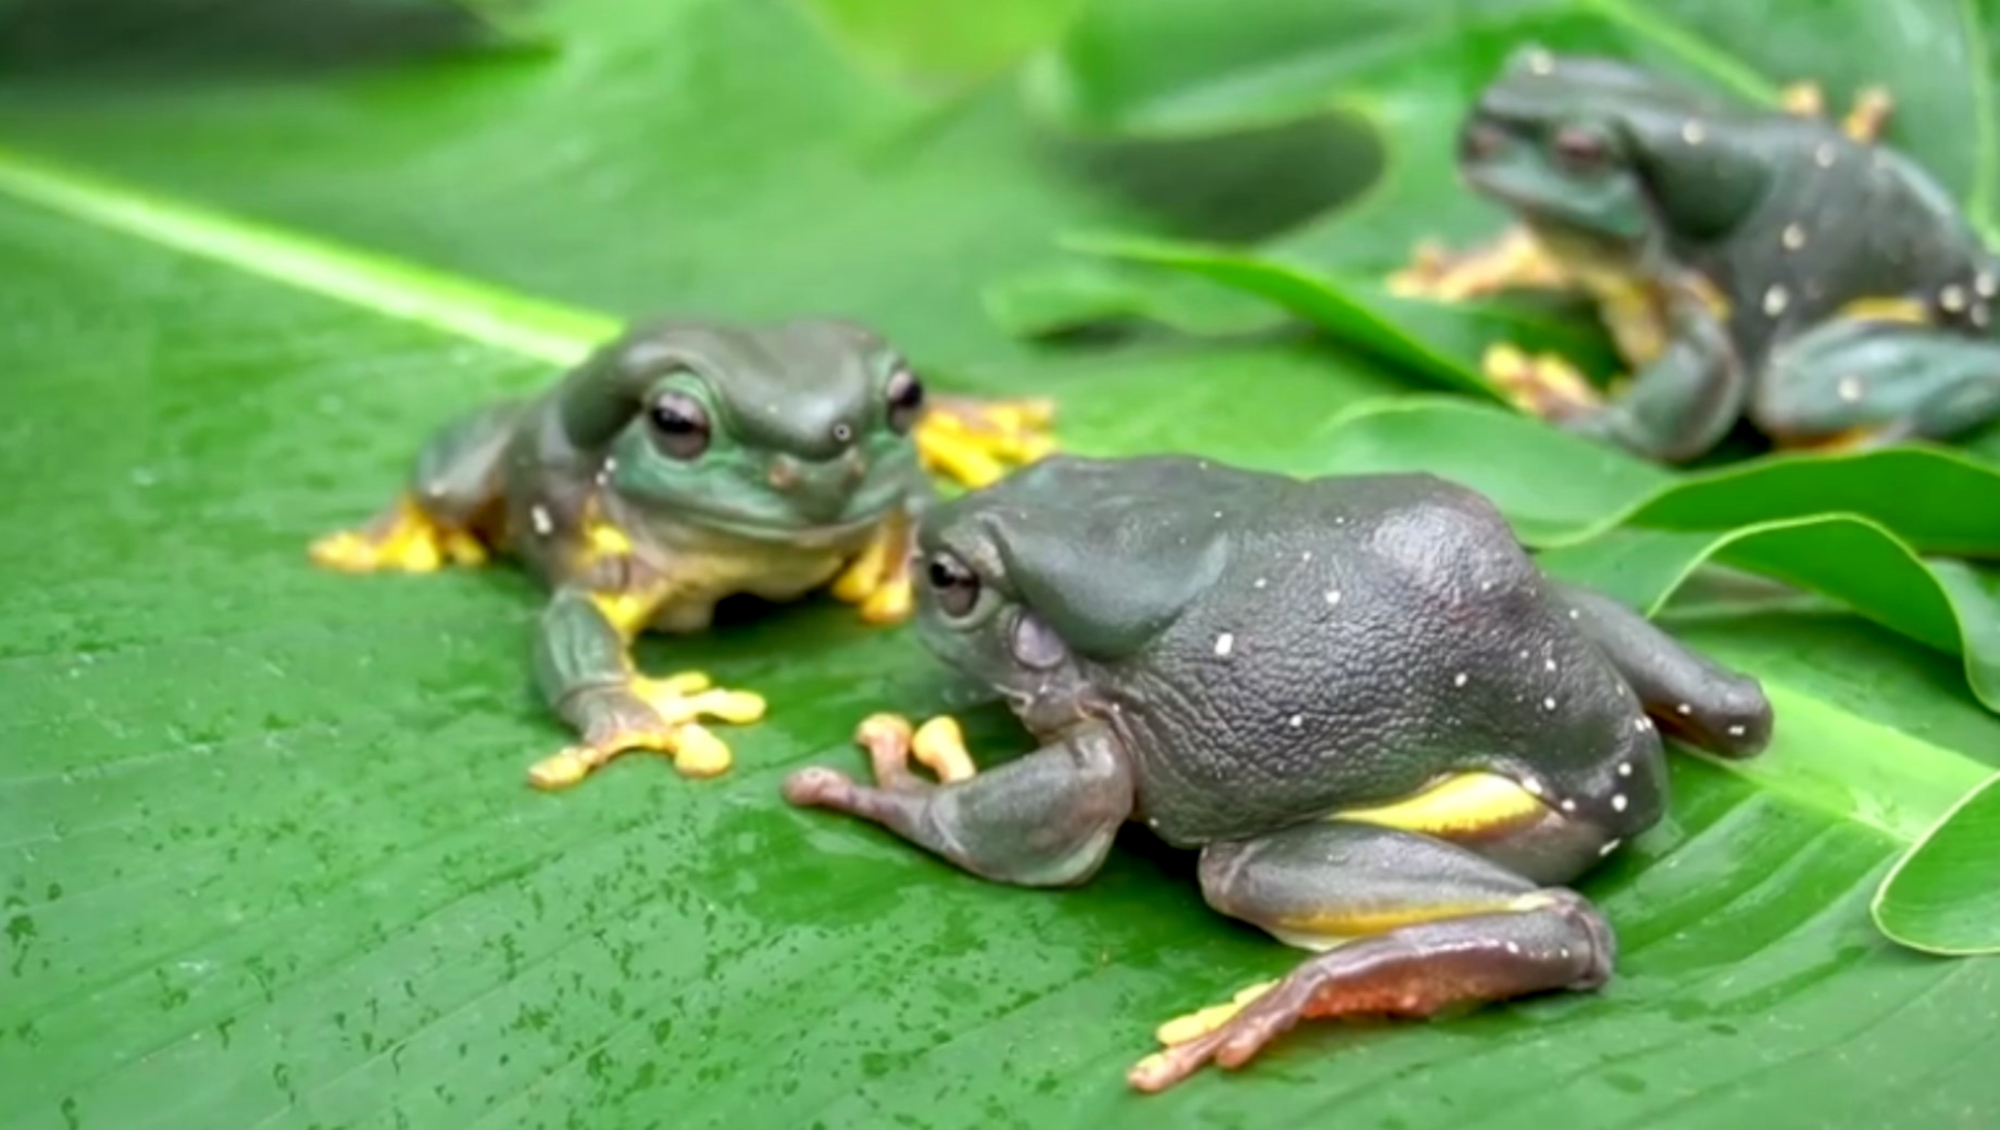 VIDEO: Hoppy Days: Hungry Tree Frogs Can't Get Enough Of Their Insect Snacks